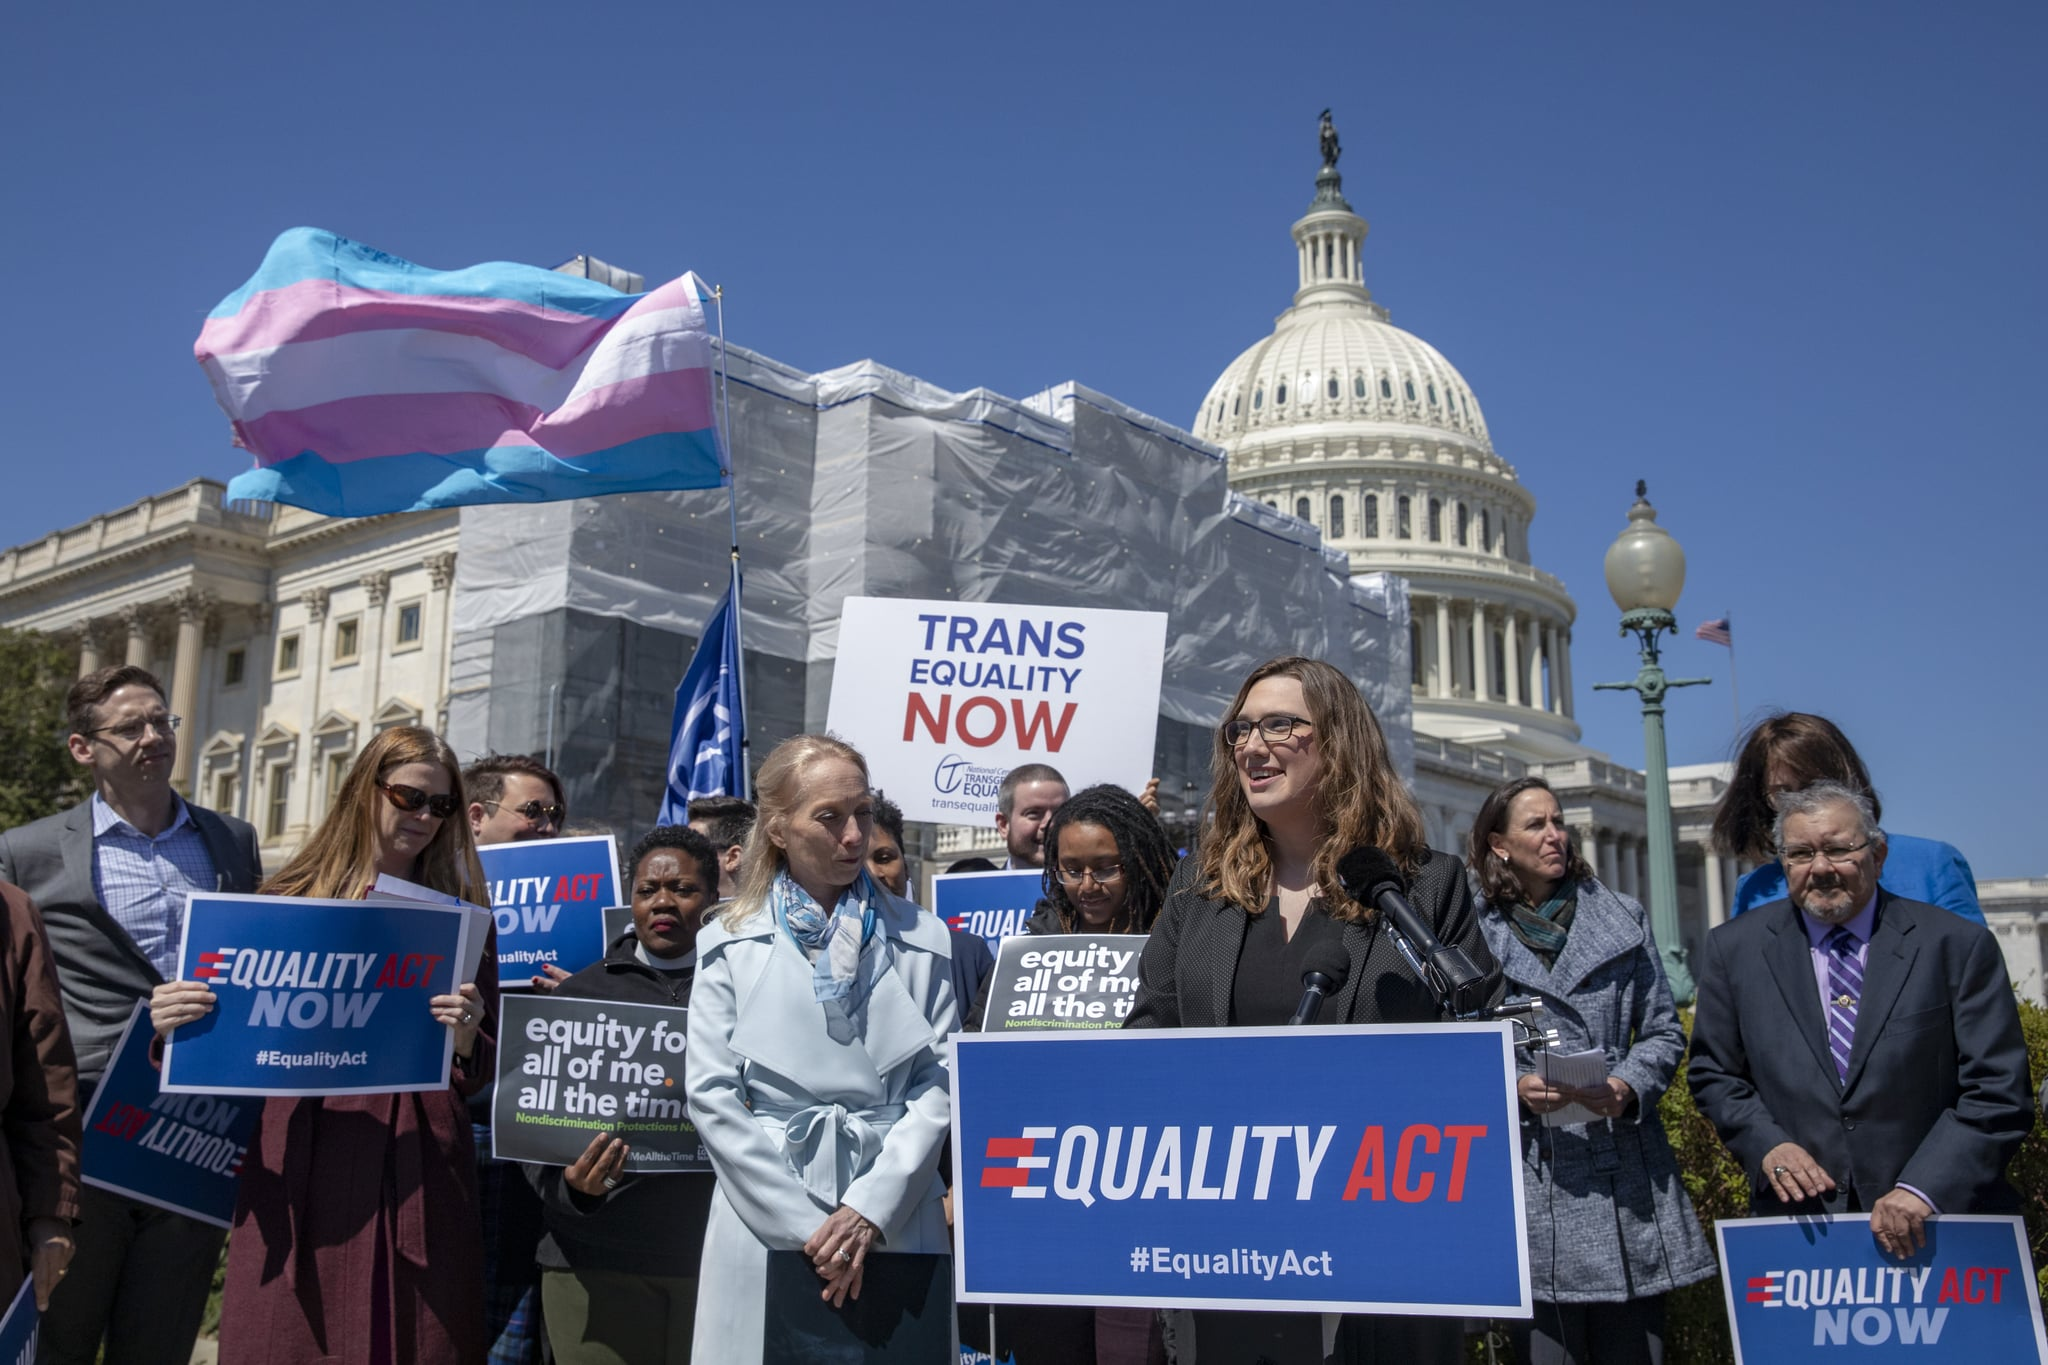 WASHINGTON, DC - APRIL 01: Sarah McBride, National Press secretary of Human Rights Collation speaks on introduction of the Equality Act, a comprehensive LGBTQ non-discrimination bill at the US Capitol on April 01, 2019 in Washington, DC. Ahead of International Transgender Day of Visibility, a bipartisan majority of the U.S. House on voted in favor of a resolution opposing the Trump-Pence discriminatory ban on transgender troops. (Photo by Tasos Katopodis/Getty Images)